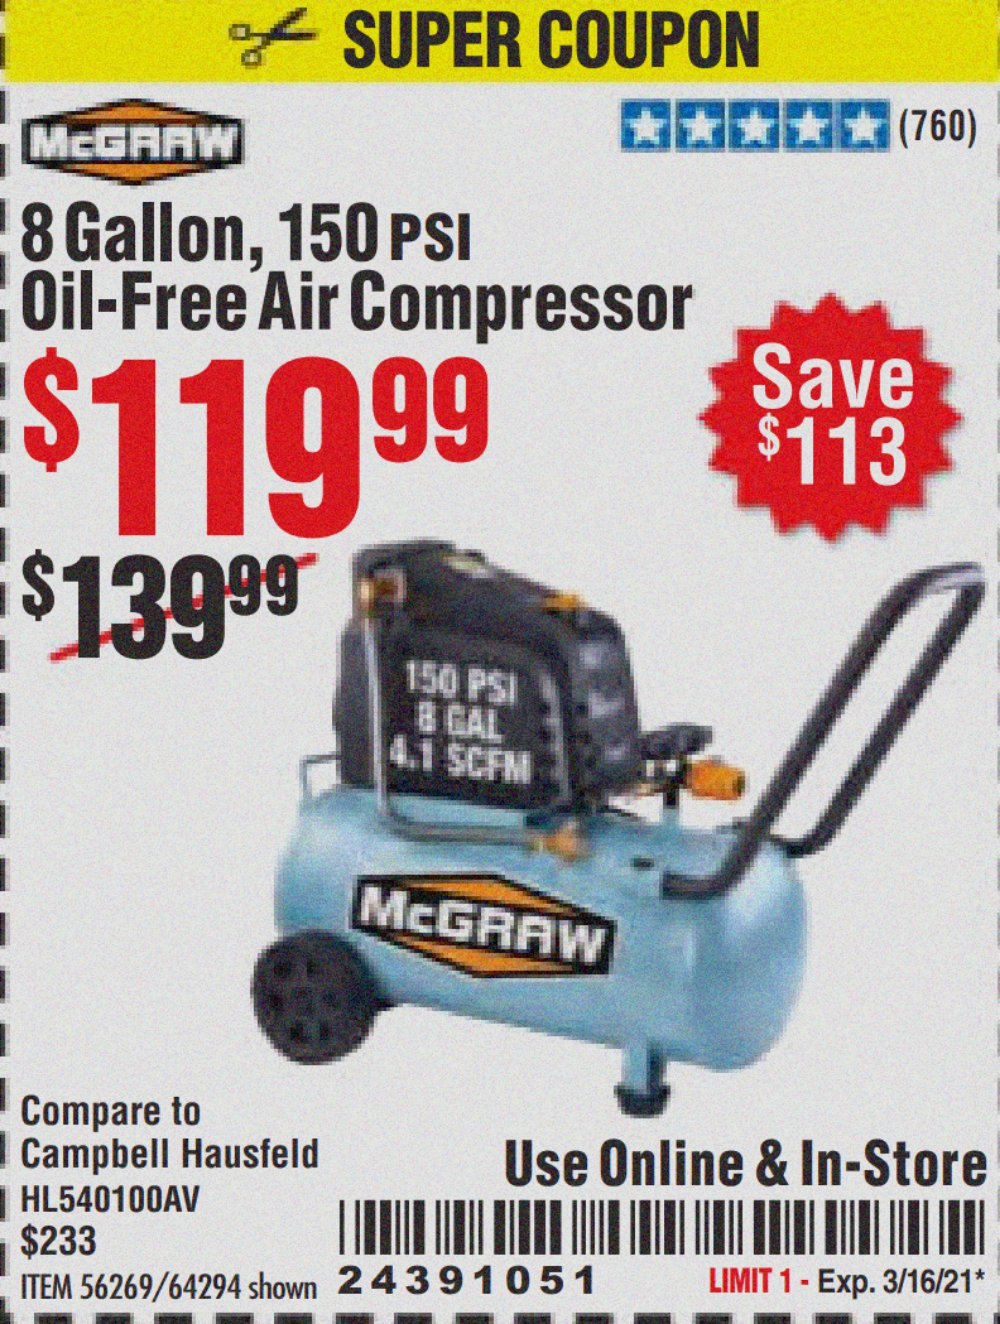 Harbor Freight Coupon, HF Coupons - Mcgraw 150 Psi, 8 Gallon, 1.5 Hp Horizontal Compressor